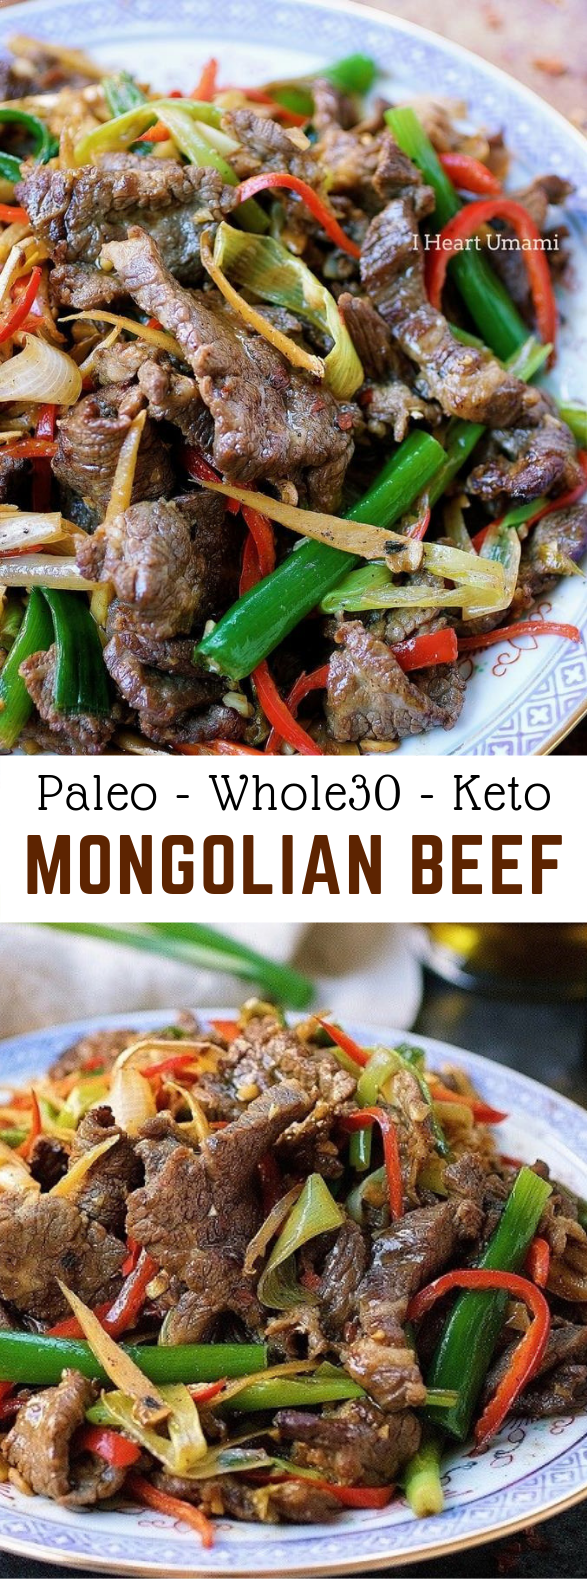 Paleo Mongolian Beef. #keto #lastketo #recipes #ketorecipes #health #ketohealth #ketogenic #ketofood...